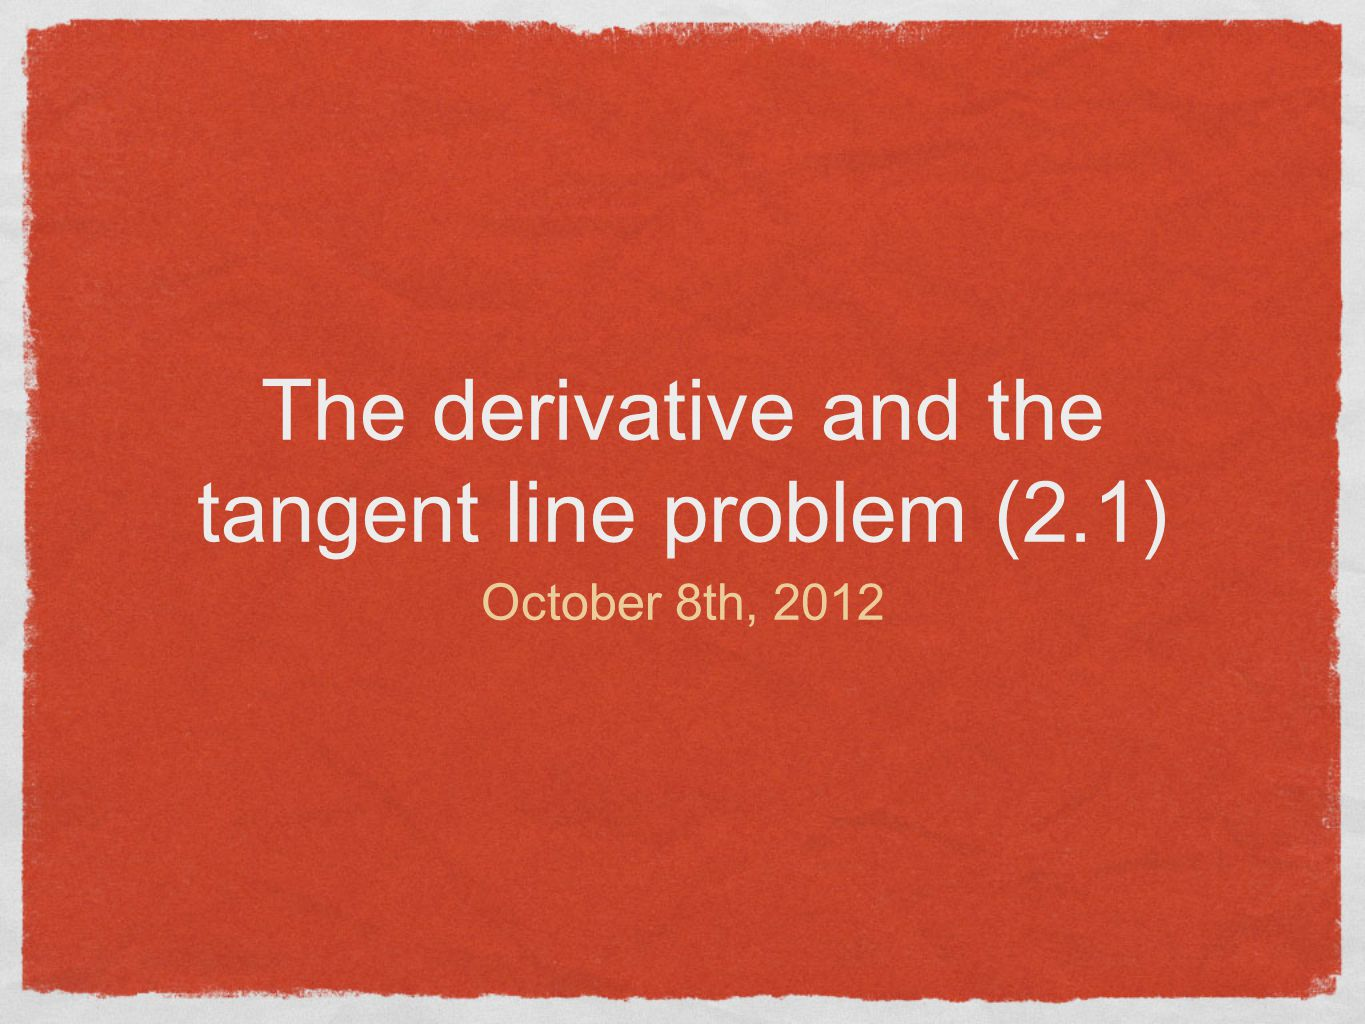 The derivative and the tangent line problem (2.1) October 8th, 2012